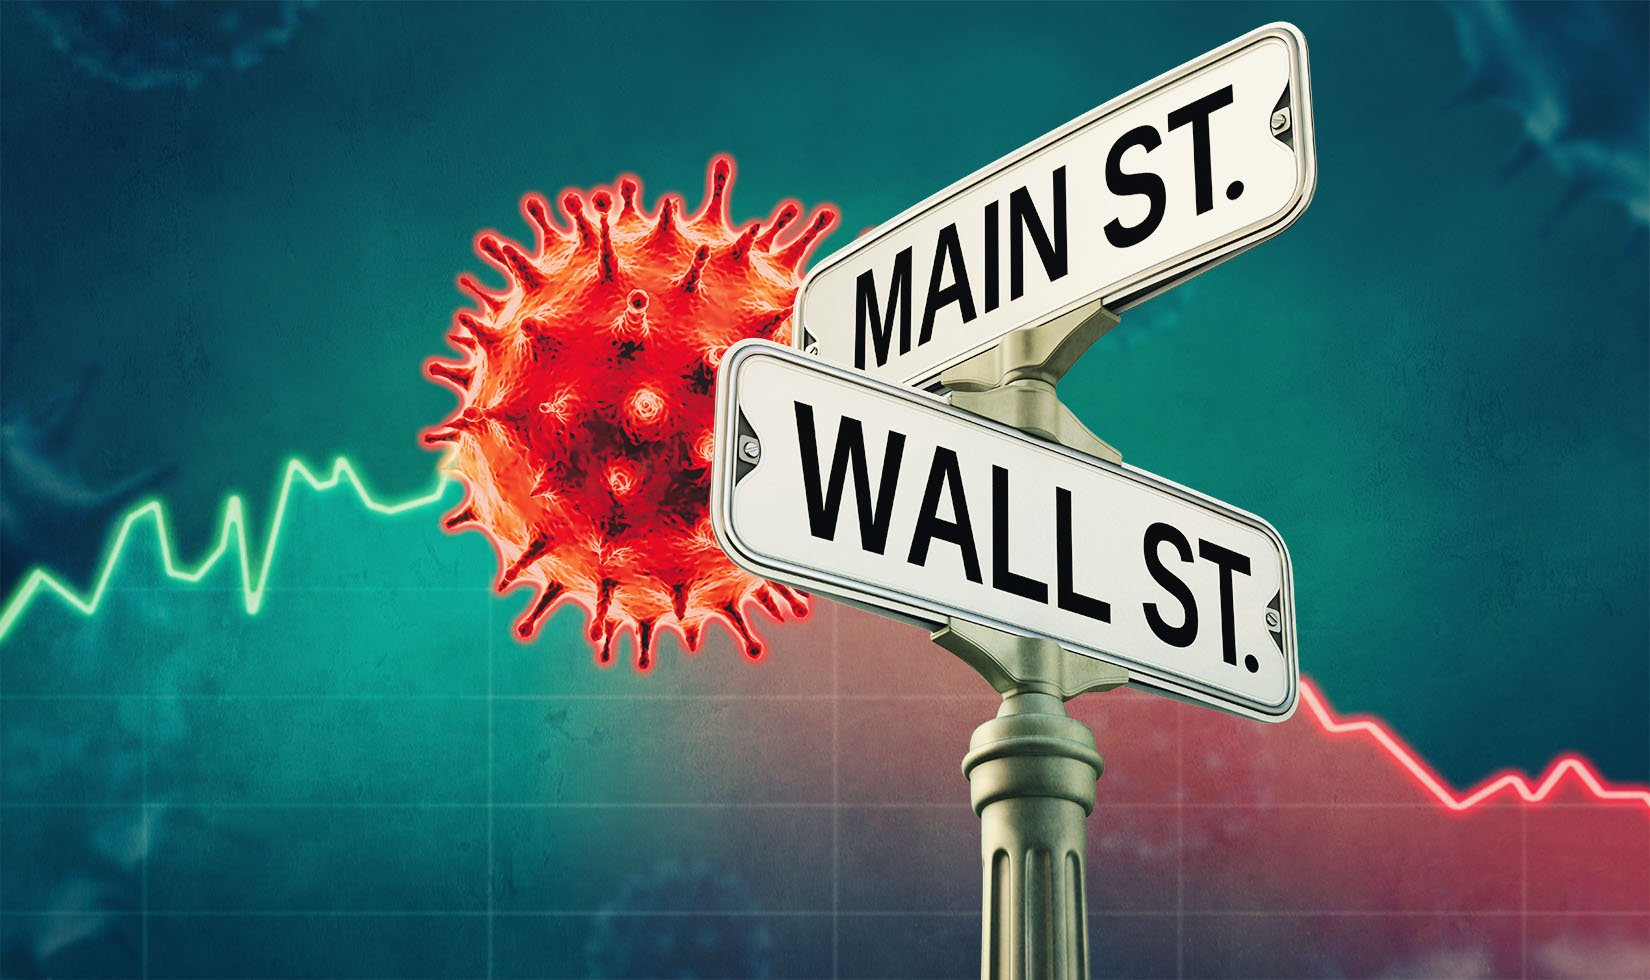 Illustration of Covid virus next to Main Street and Wall Street signs